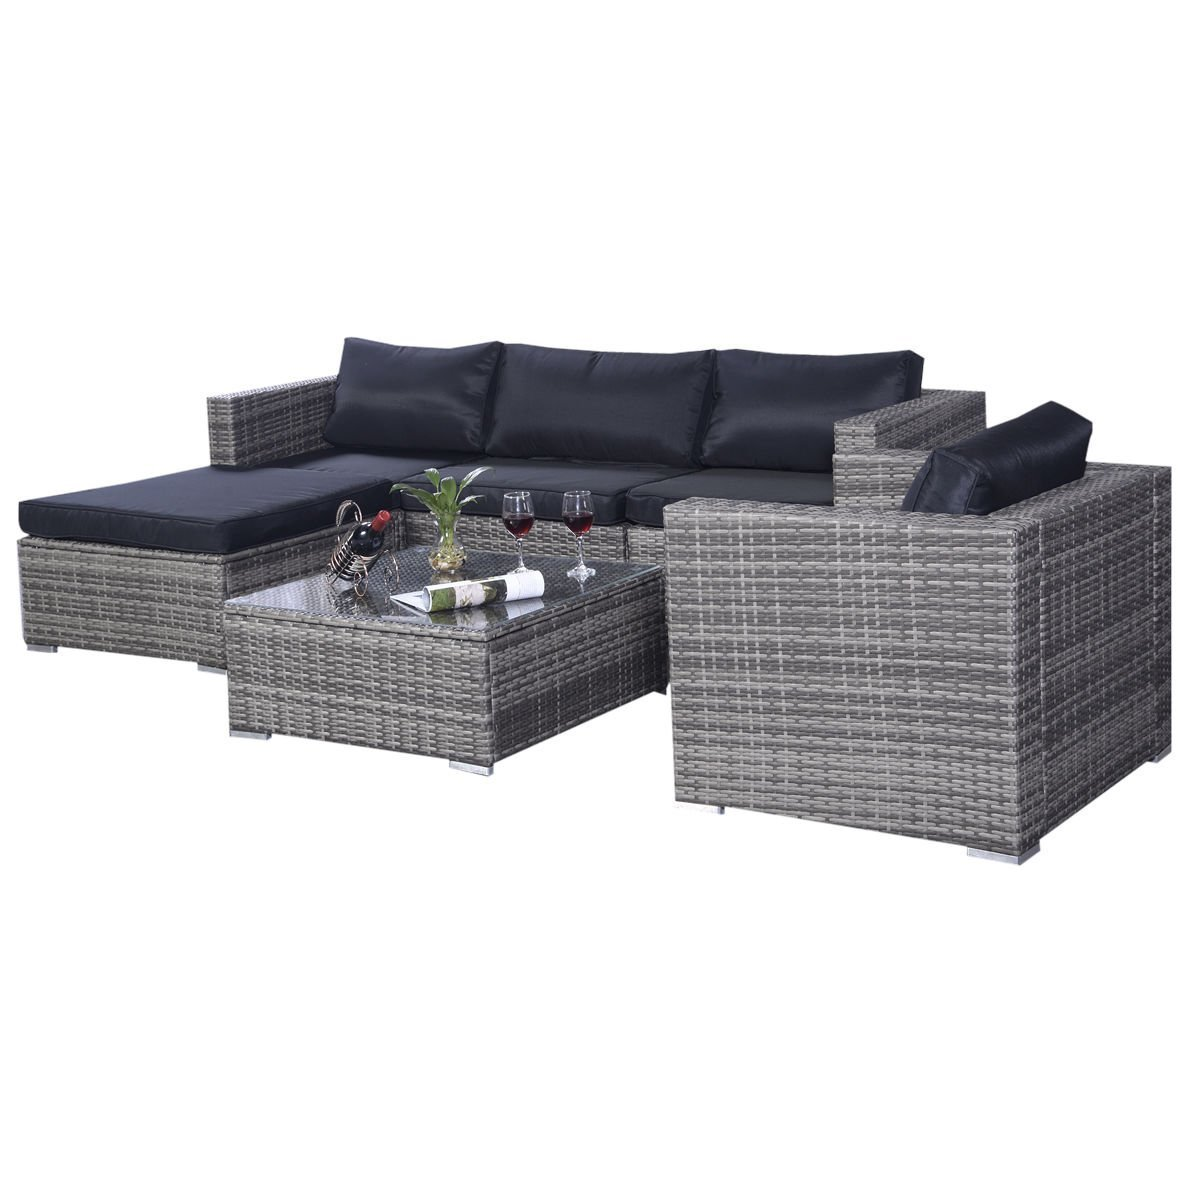 Amazon com  Tangkula 6 Pcs Outdoor Wicker Furniture Set Sofas Ottoman with  Cushions Gradient Gray  Garden   Outdoor. Amazon com  Tangkula 6 Pcs Outdoor Wicker Furniture Set Sofas